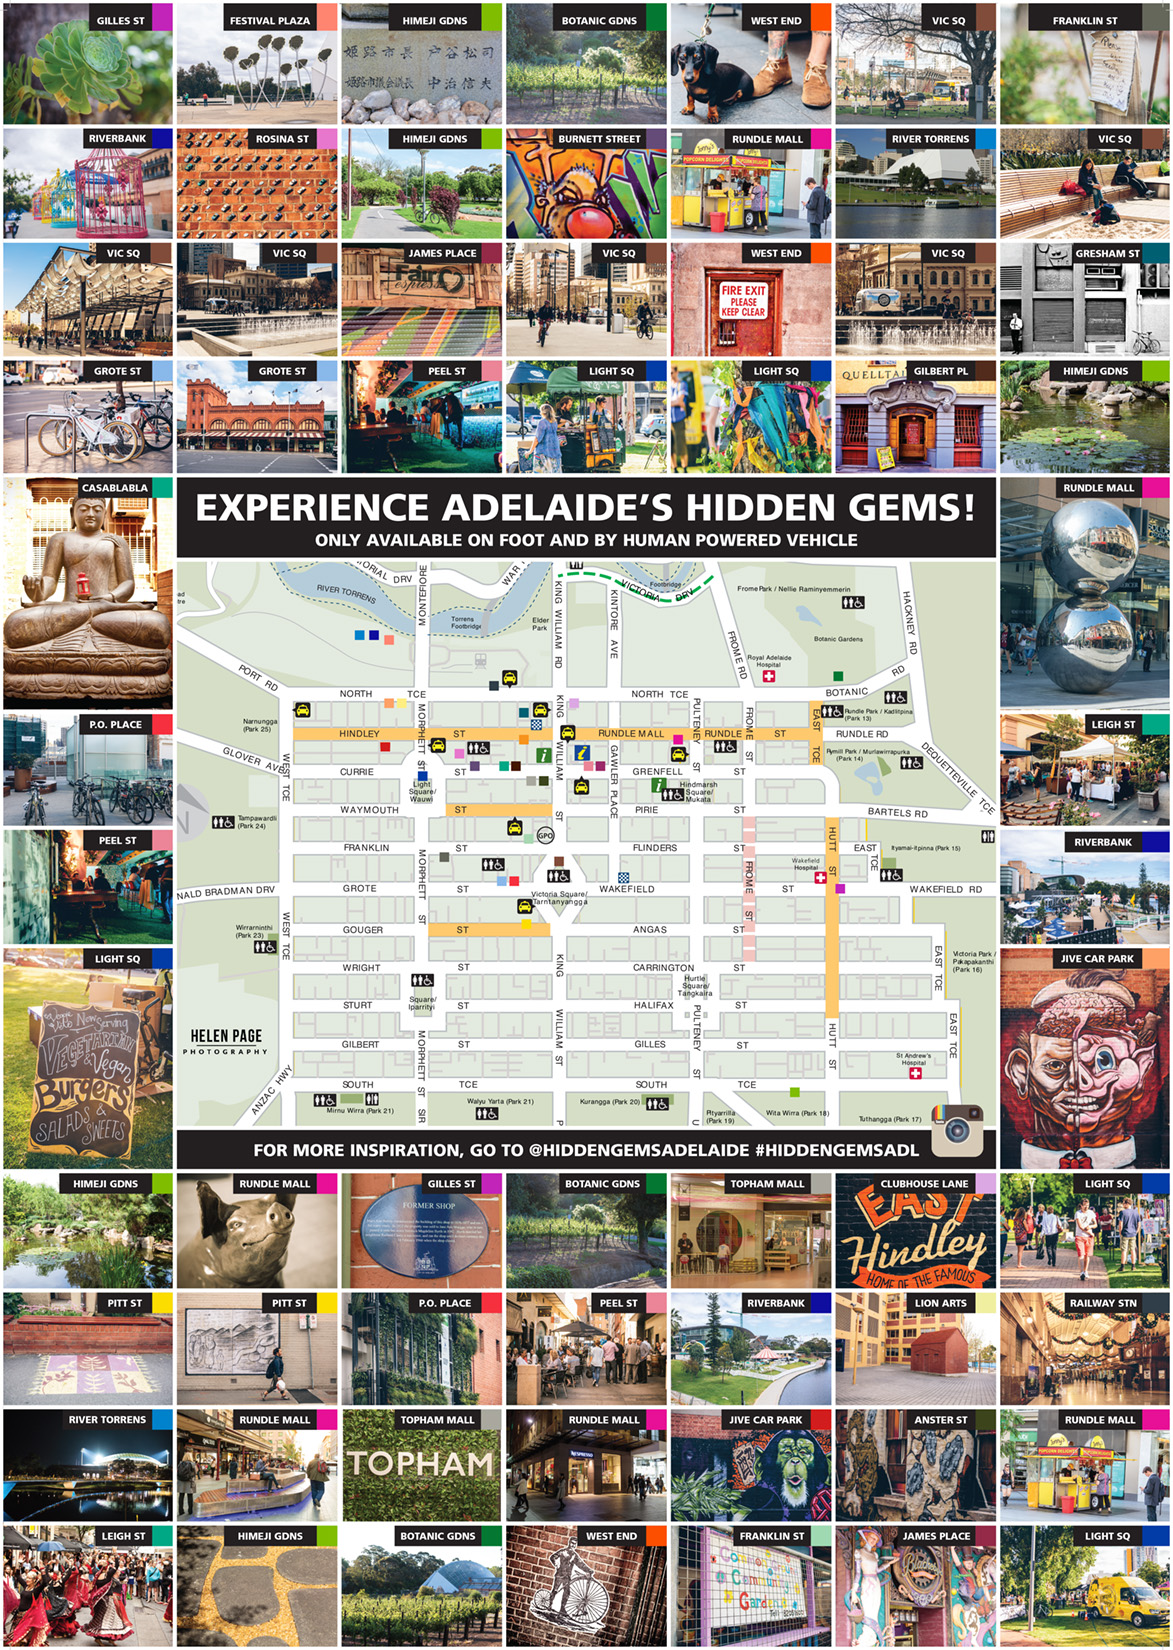 A map showing some of the Hidden Gems of Adelaide City i